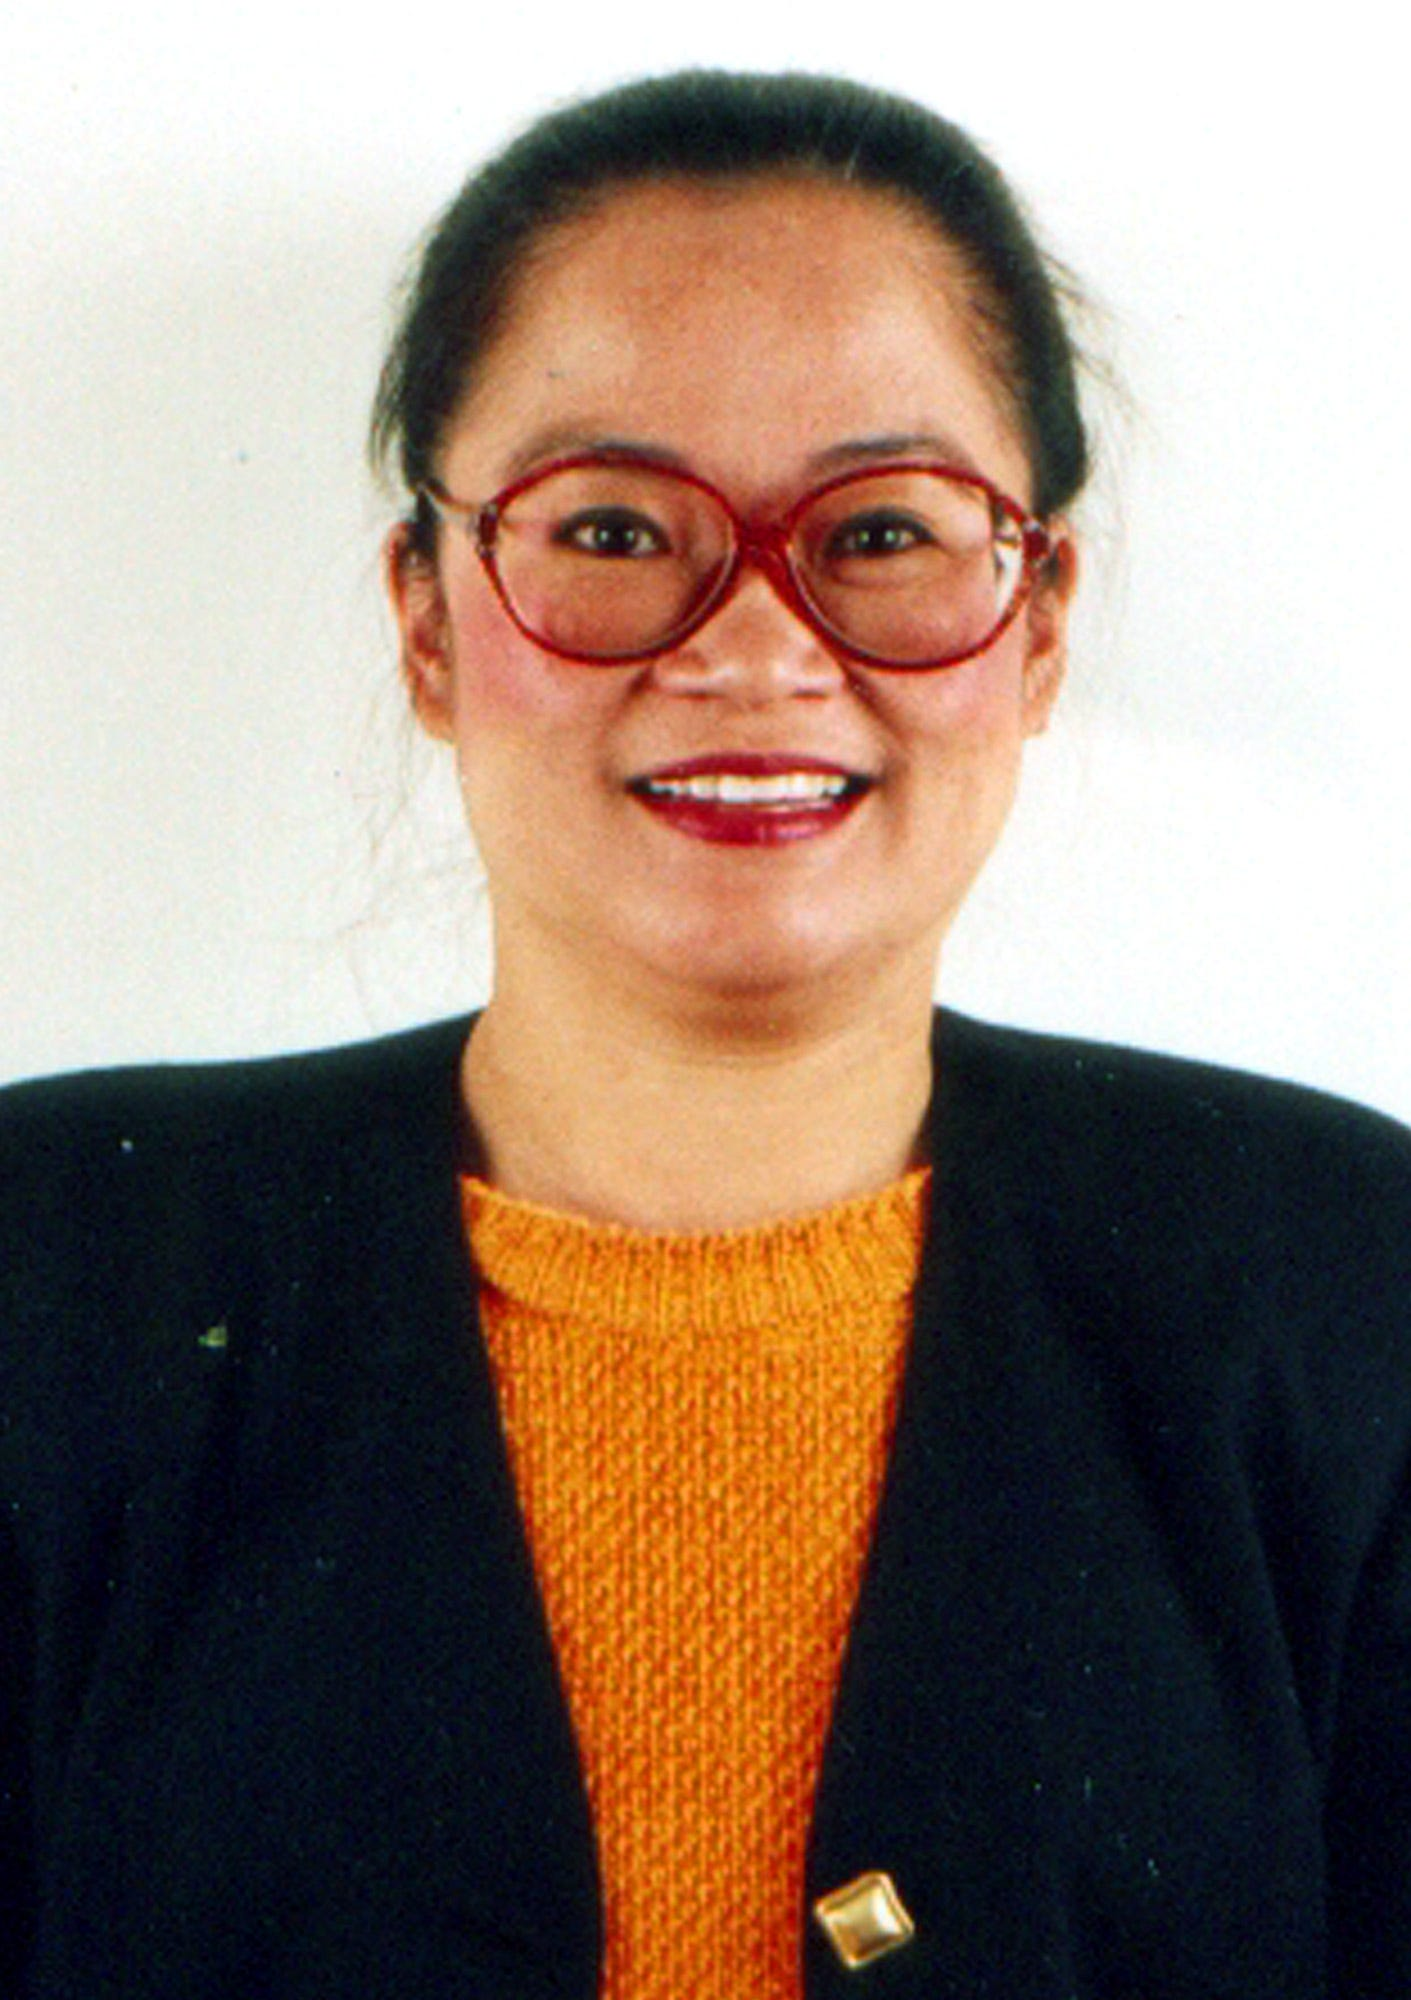 Katrina Leung was accused of spying, but the case was dismissed over prosecutorial misconduct. Under a plea agreement, she admitted lying to the FBI and filing a false tax return and was sentenced to probation.